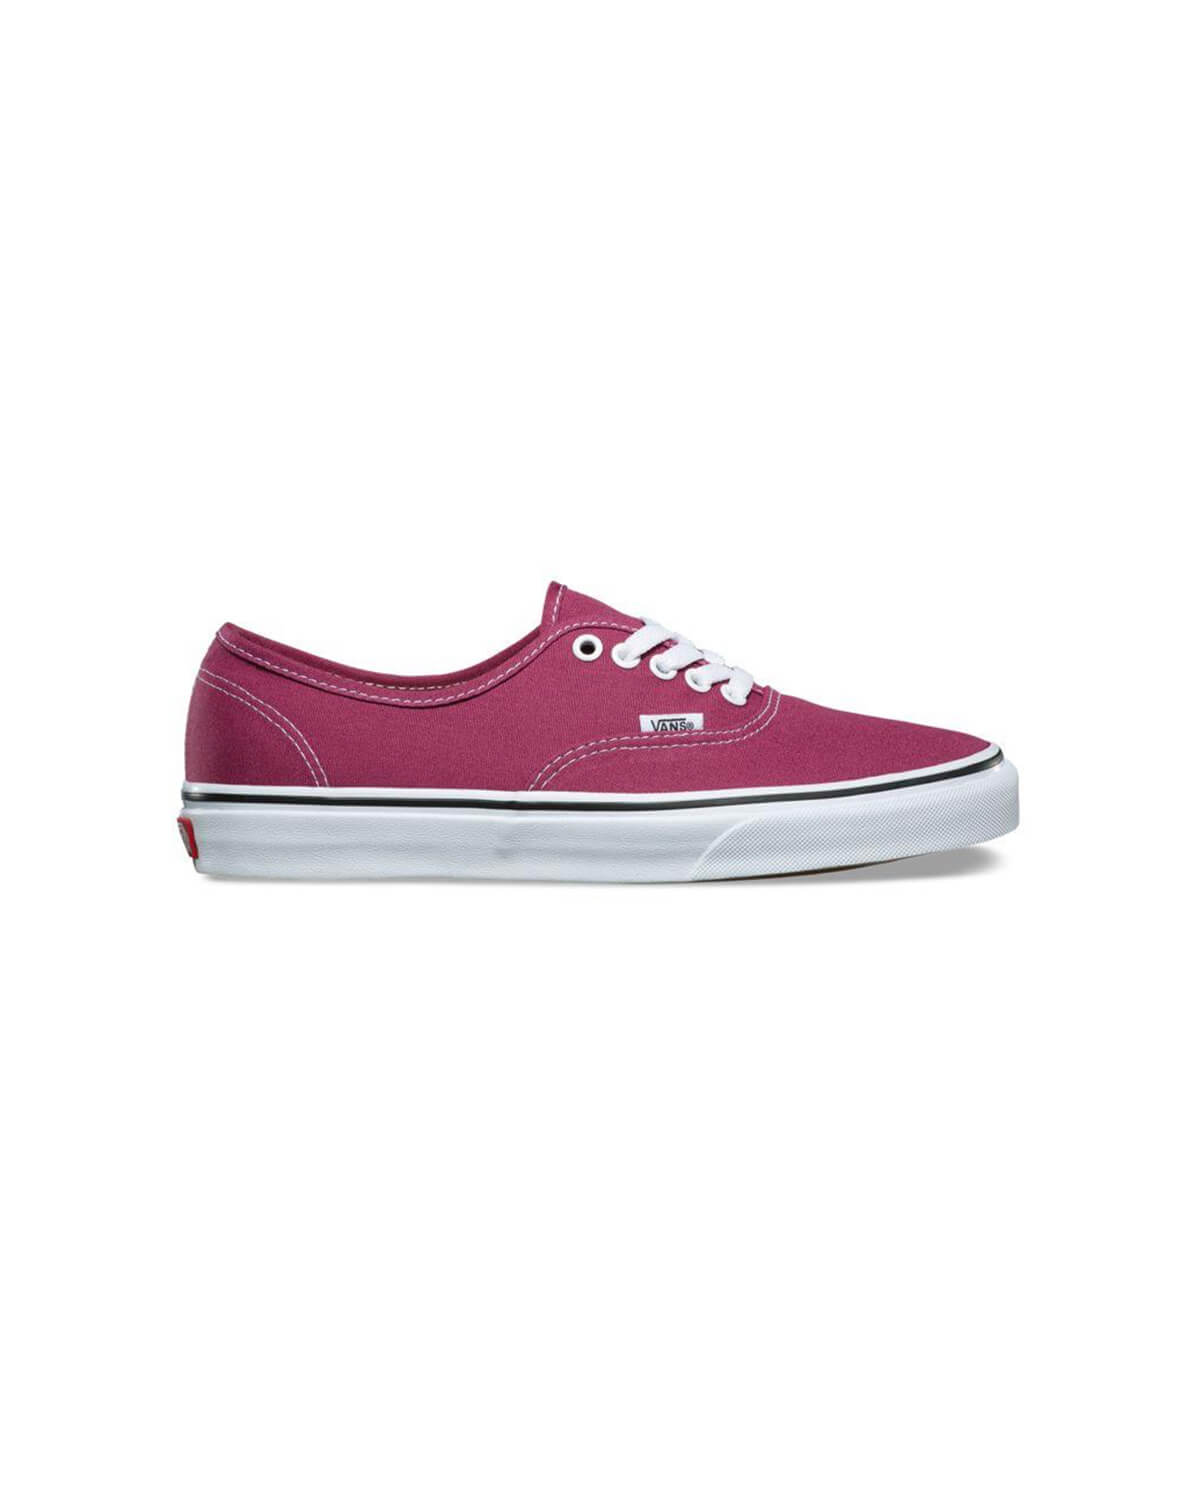 VANS AUTHENTIC DRY ROSE – RED MARKET